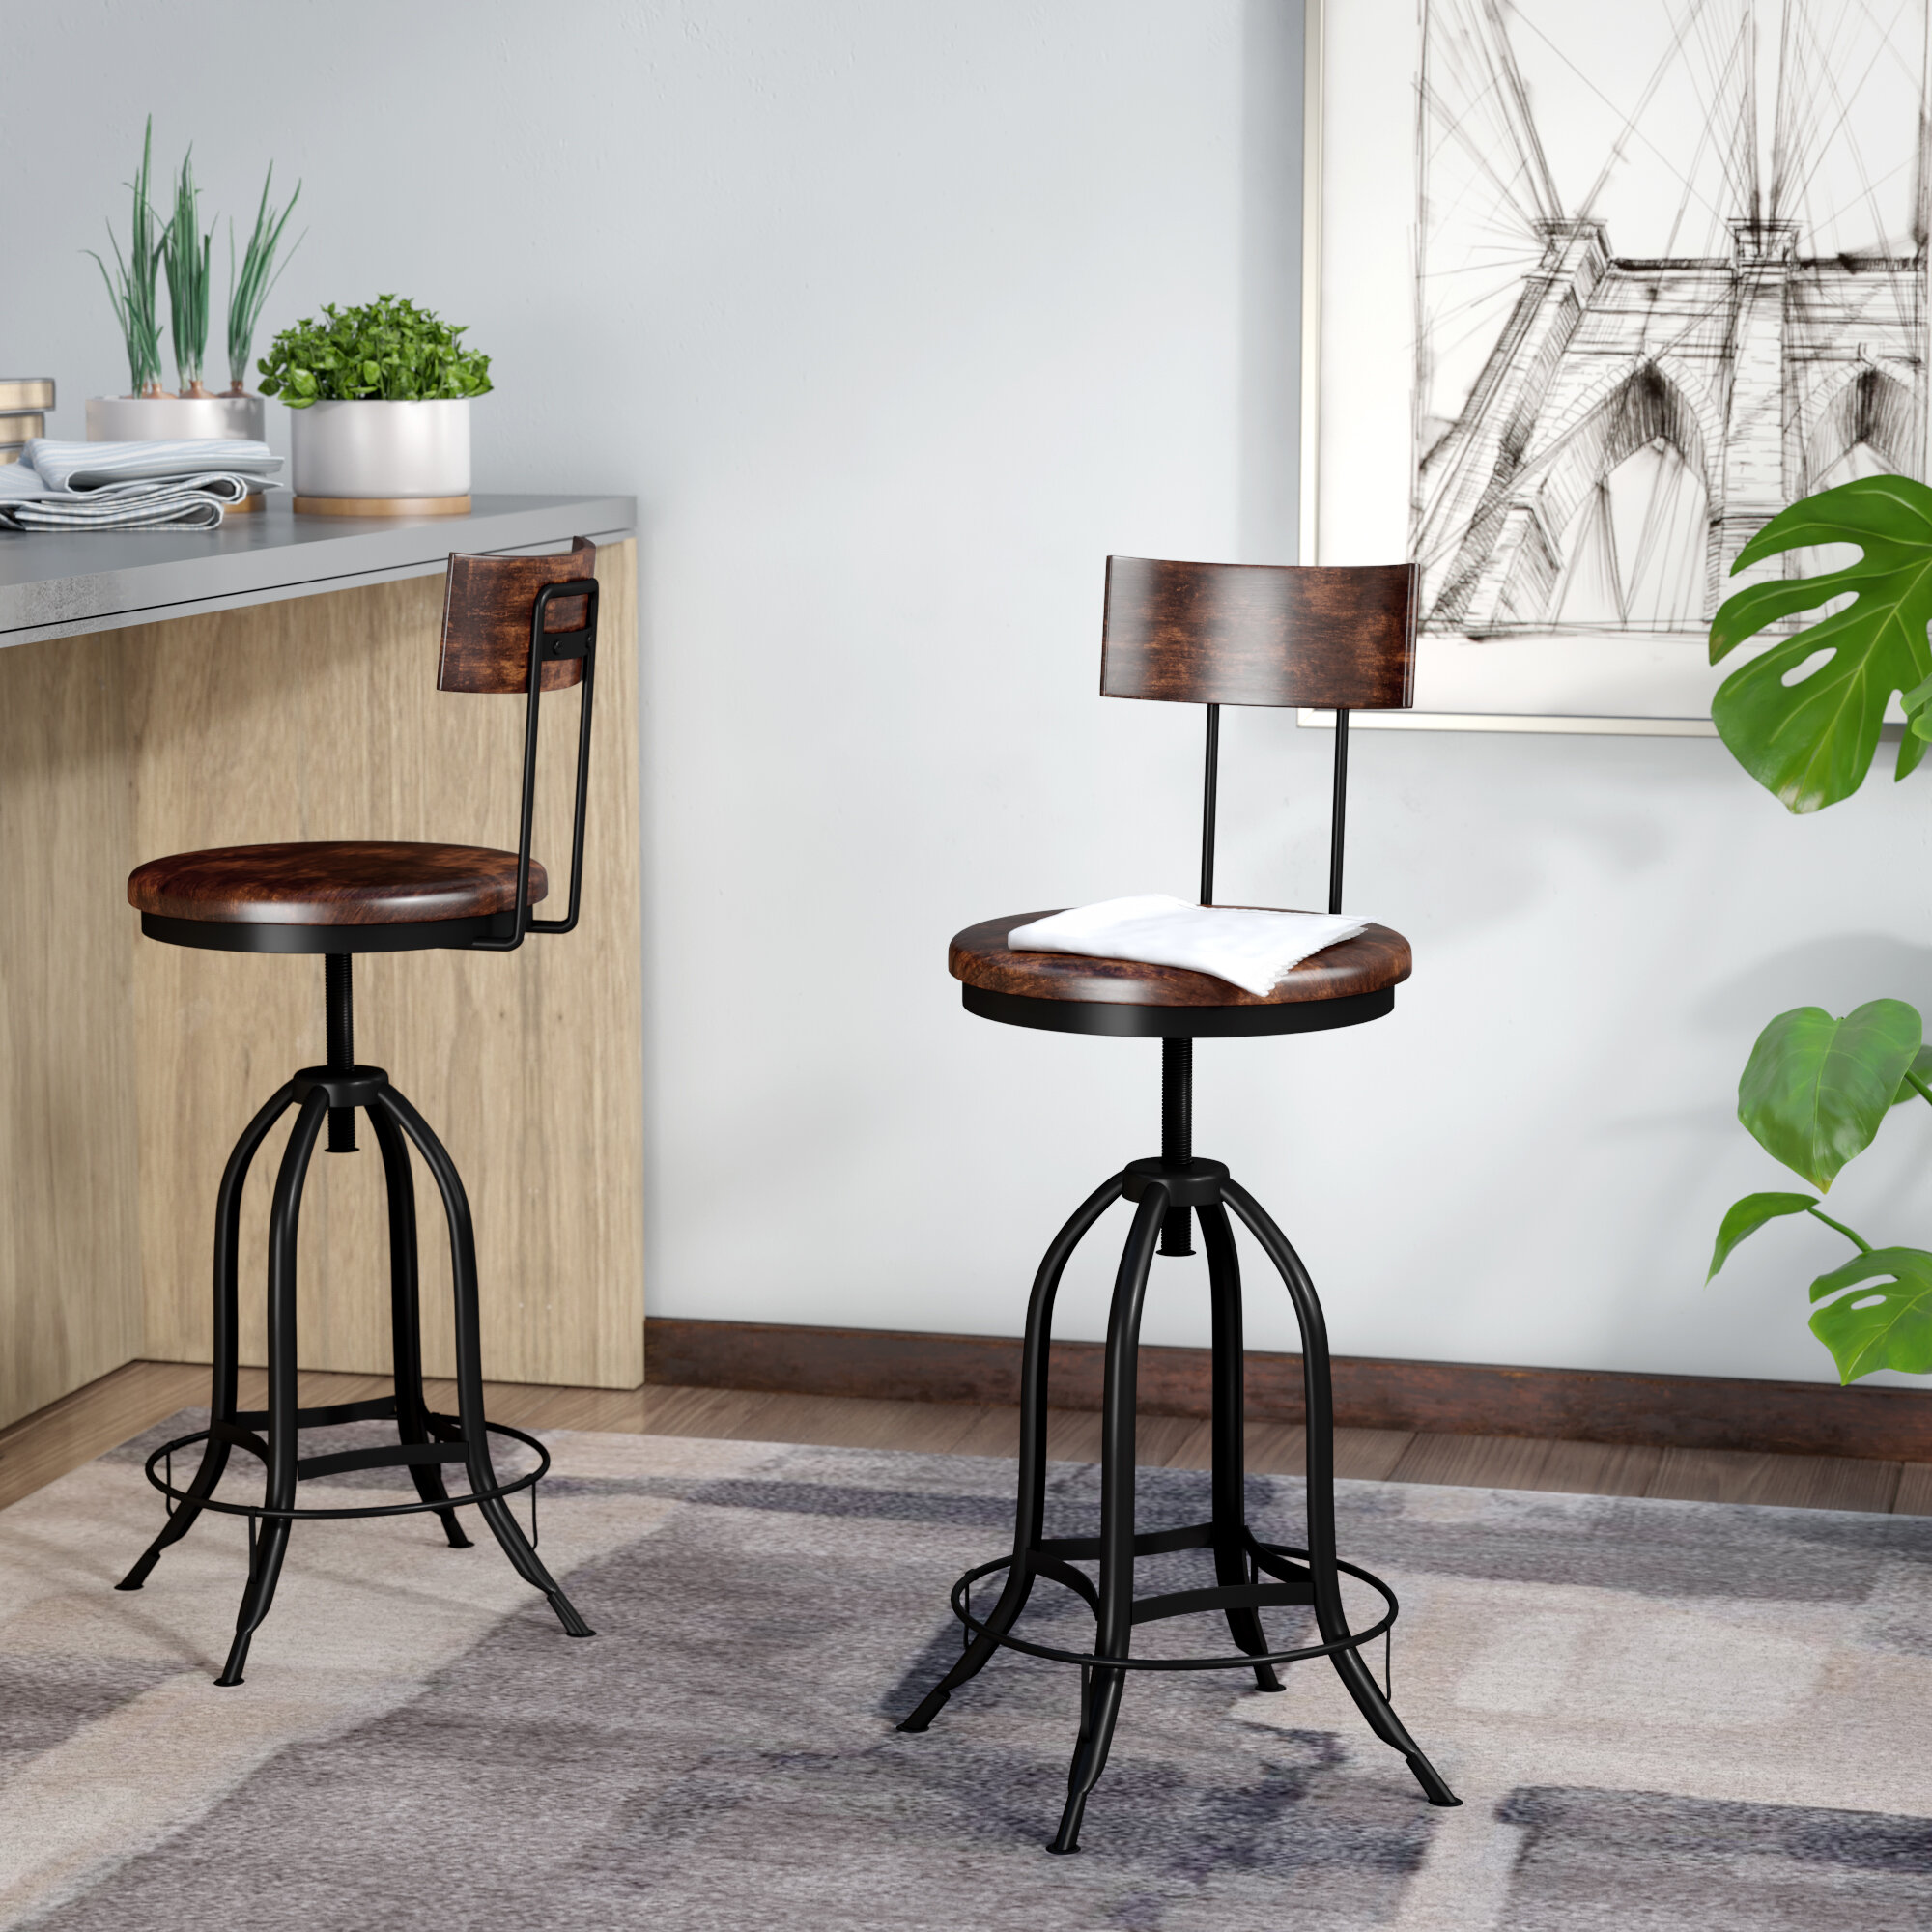 Sensational Nevada Adjustable Height Swivel Bar Stool Onthecornerstone Fun Painted Chair Ideas Images Onthecornerstoneorg